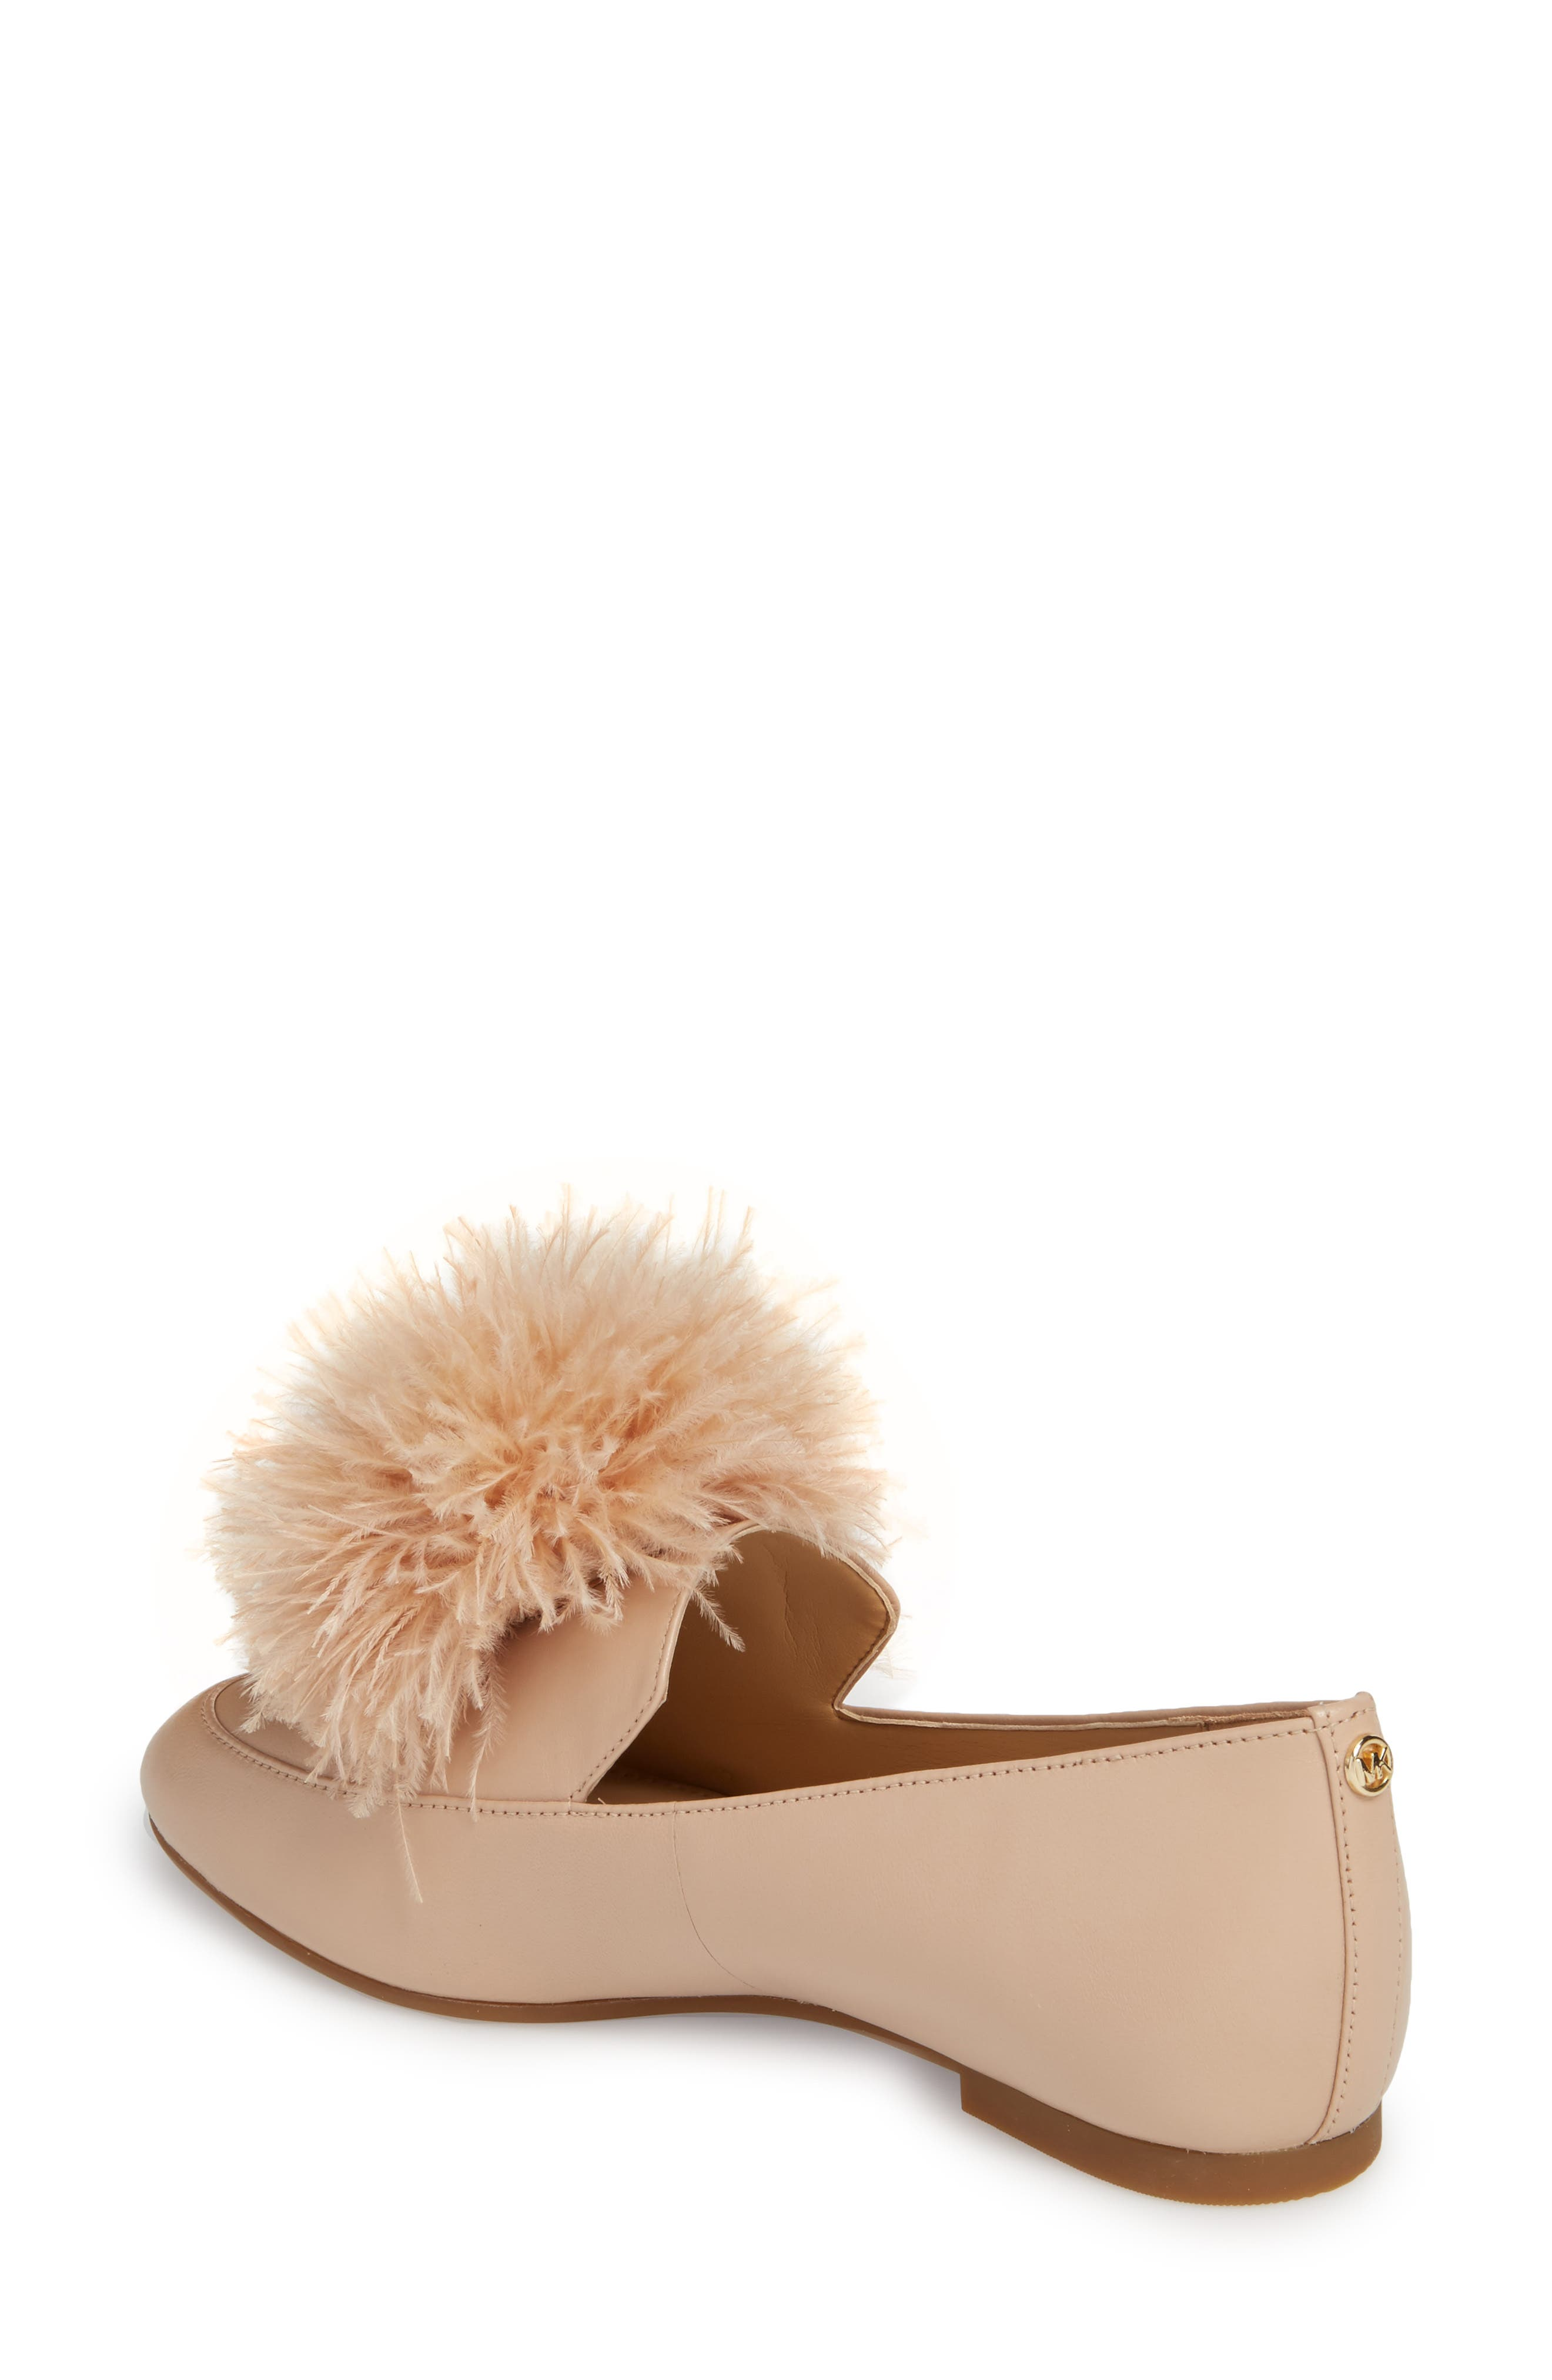 Fara Feather Pom Loafer,                             Alternate thumbnail 2, color,                             Oyster Nappa Leather